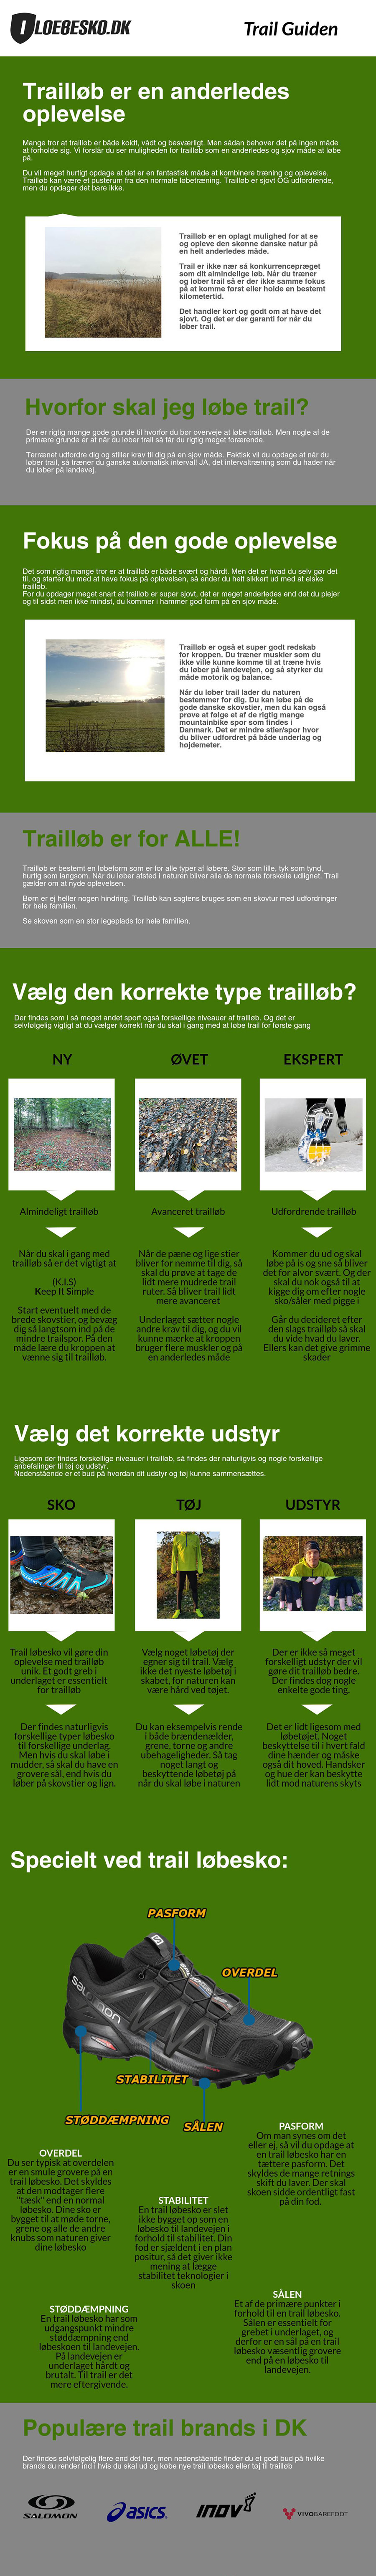 stor infochart og guide til trailløb